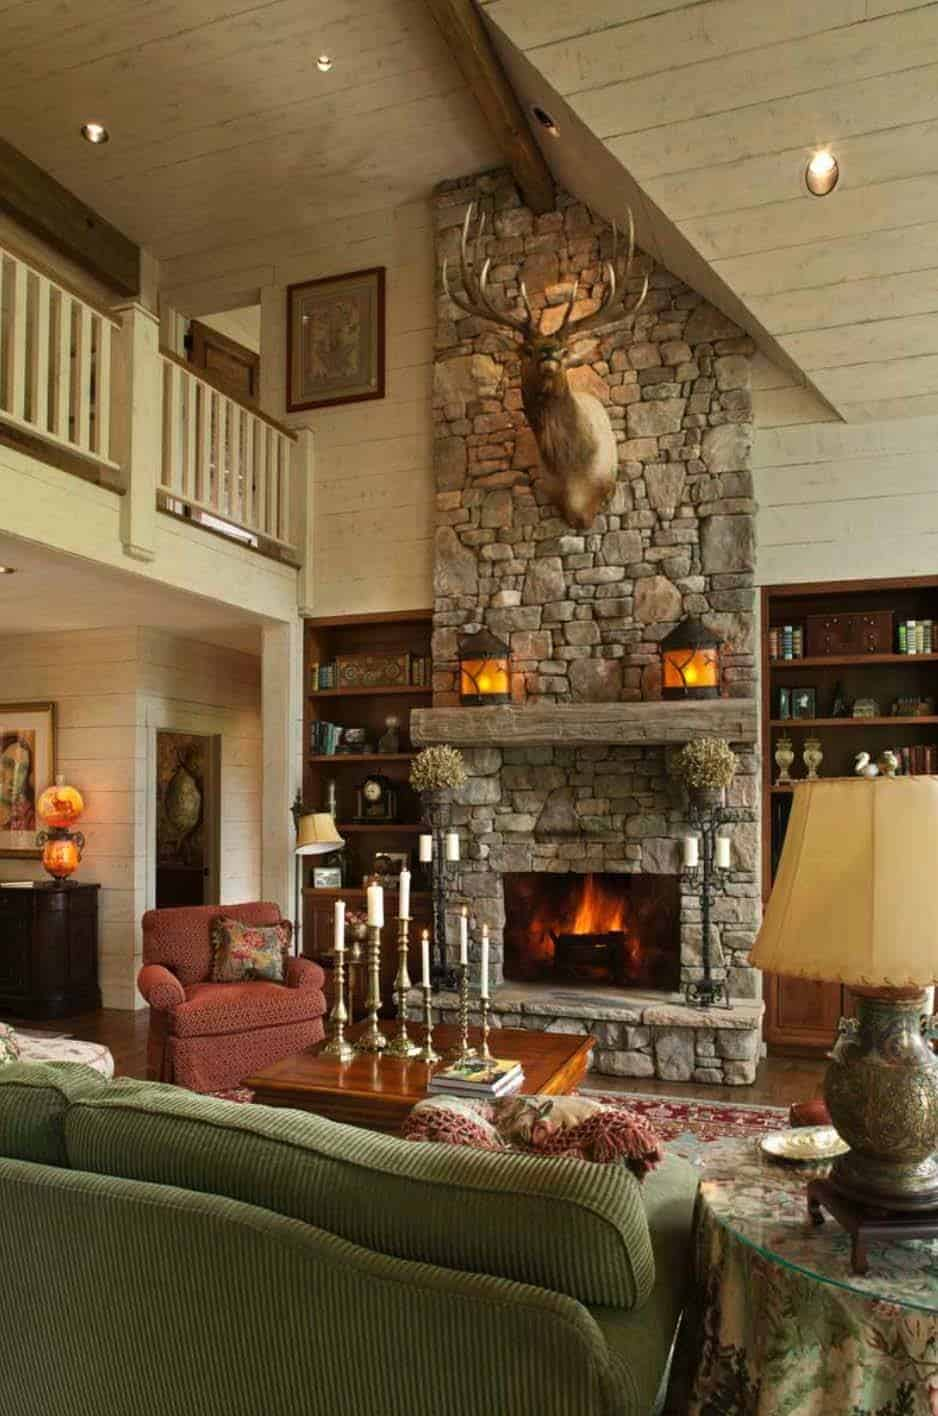 Cozy Fireplace Ideas-29-1 Kindesign